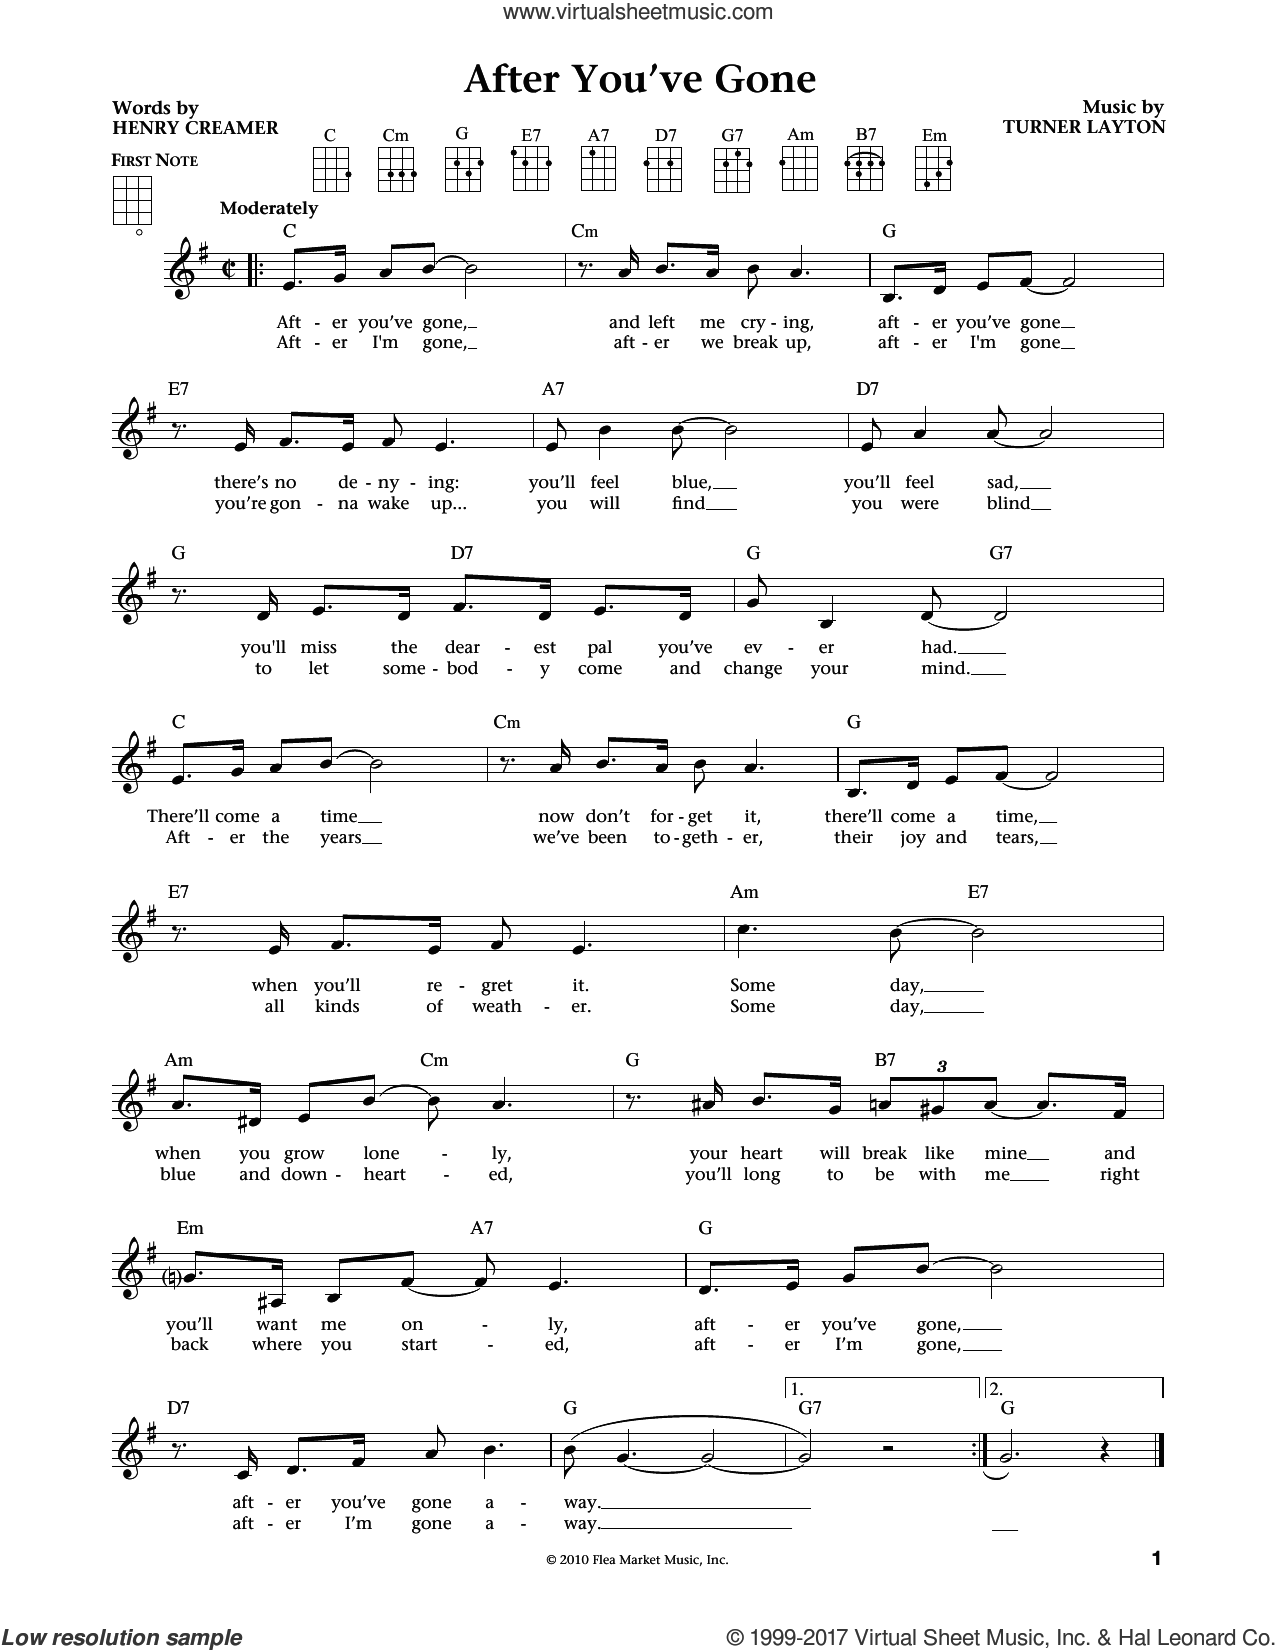 After You've Gone sheet music for ukulele by Sophie Tucker, Jim Beloff, Liz Beloff, Henry Creamer and Turner Layton, intermediate